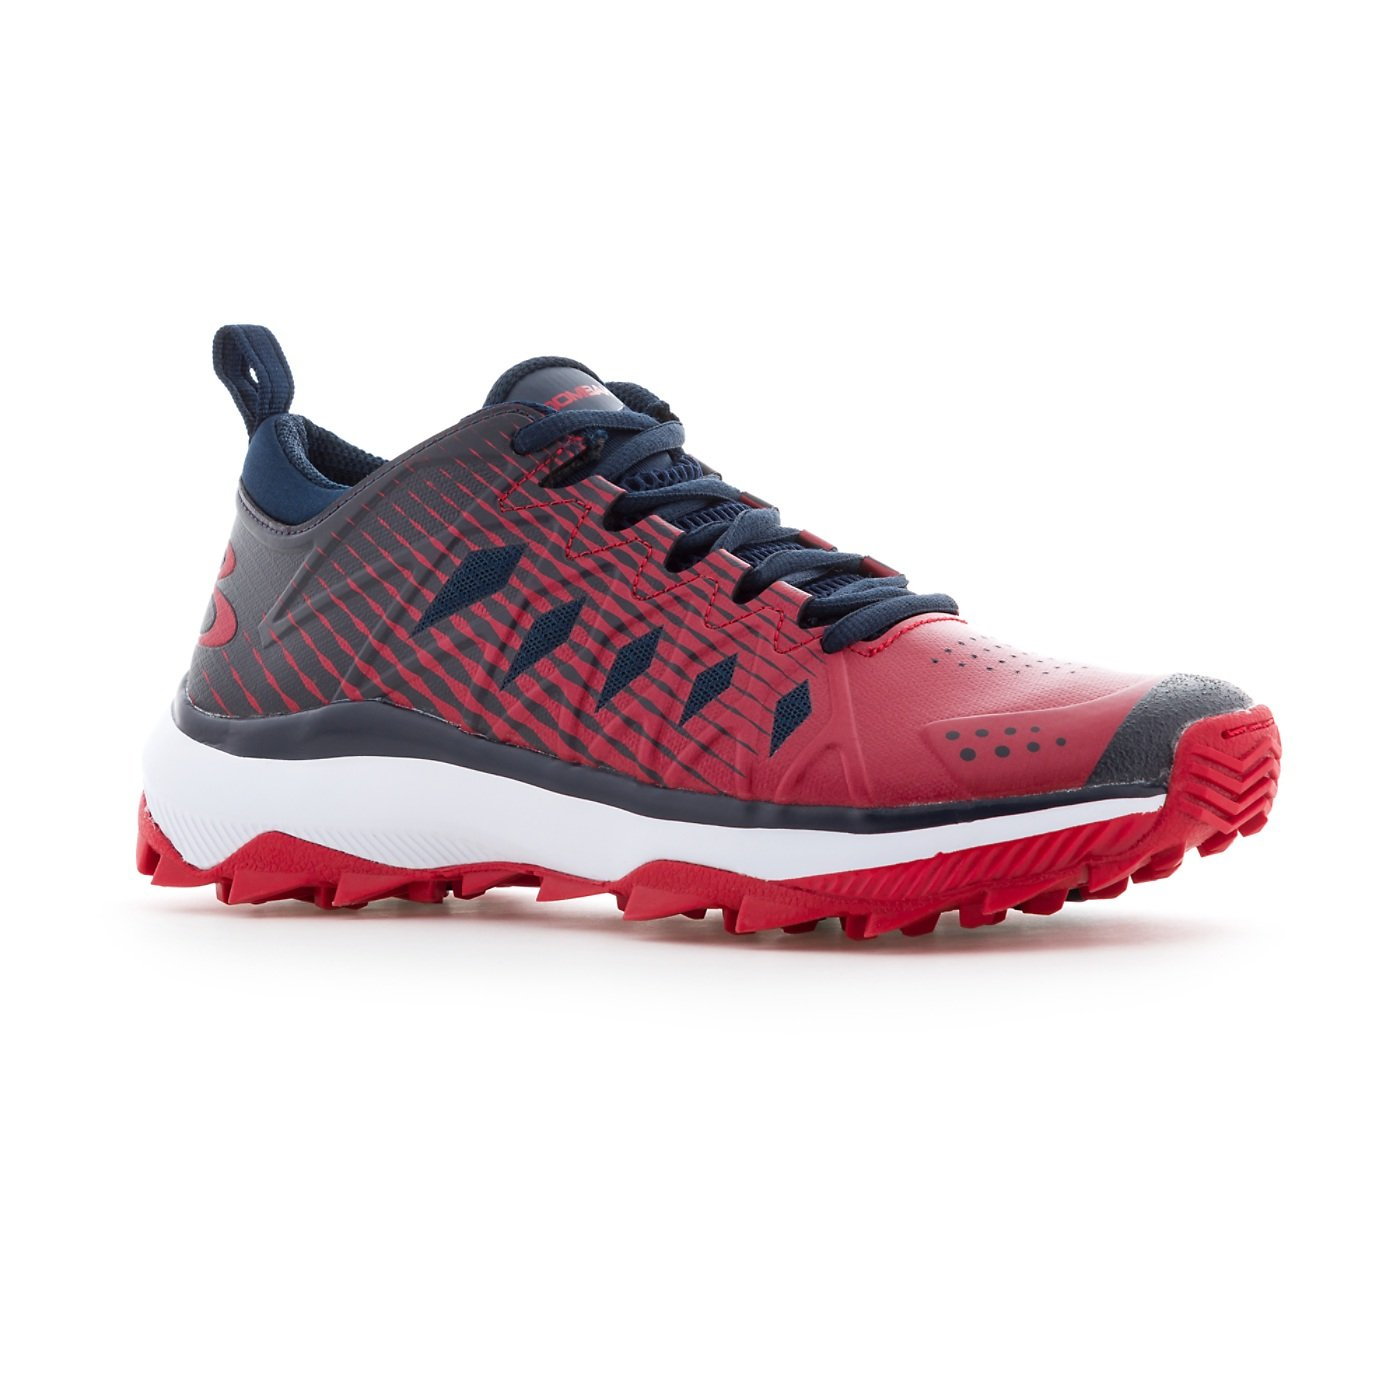 Boombah Women's Squadron Turf Shoes - 14 Color B079JPG2FP Options - Multiple Sizes B079JPG2FP Color 8.5|Navy/Red 7a24d9